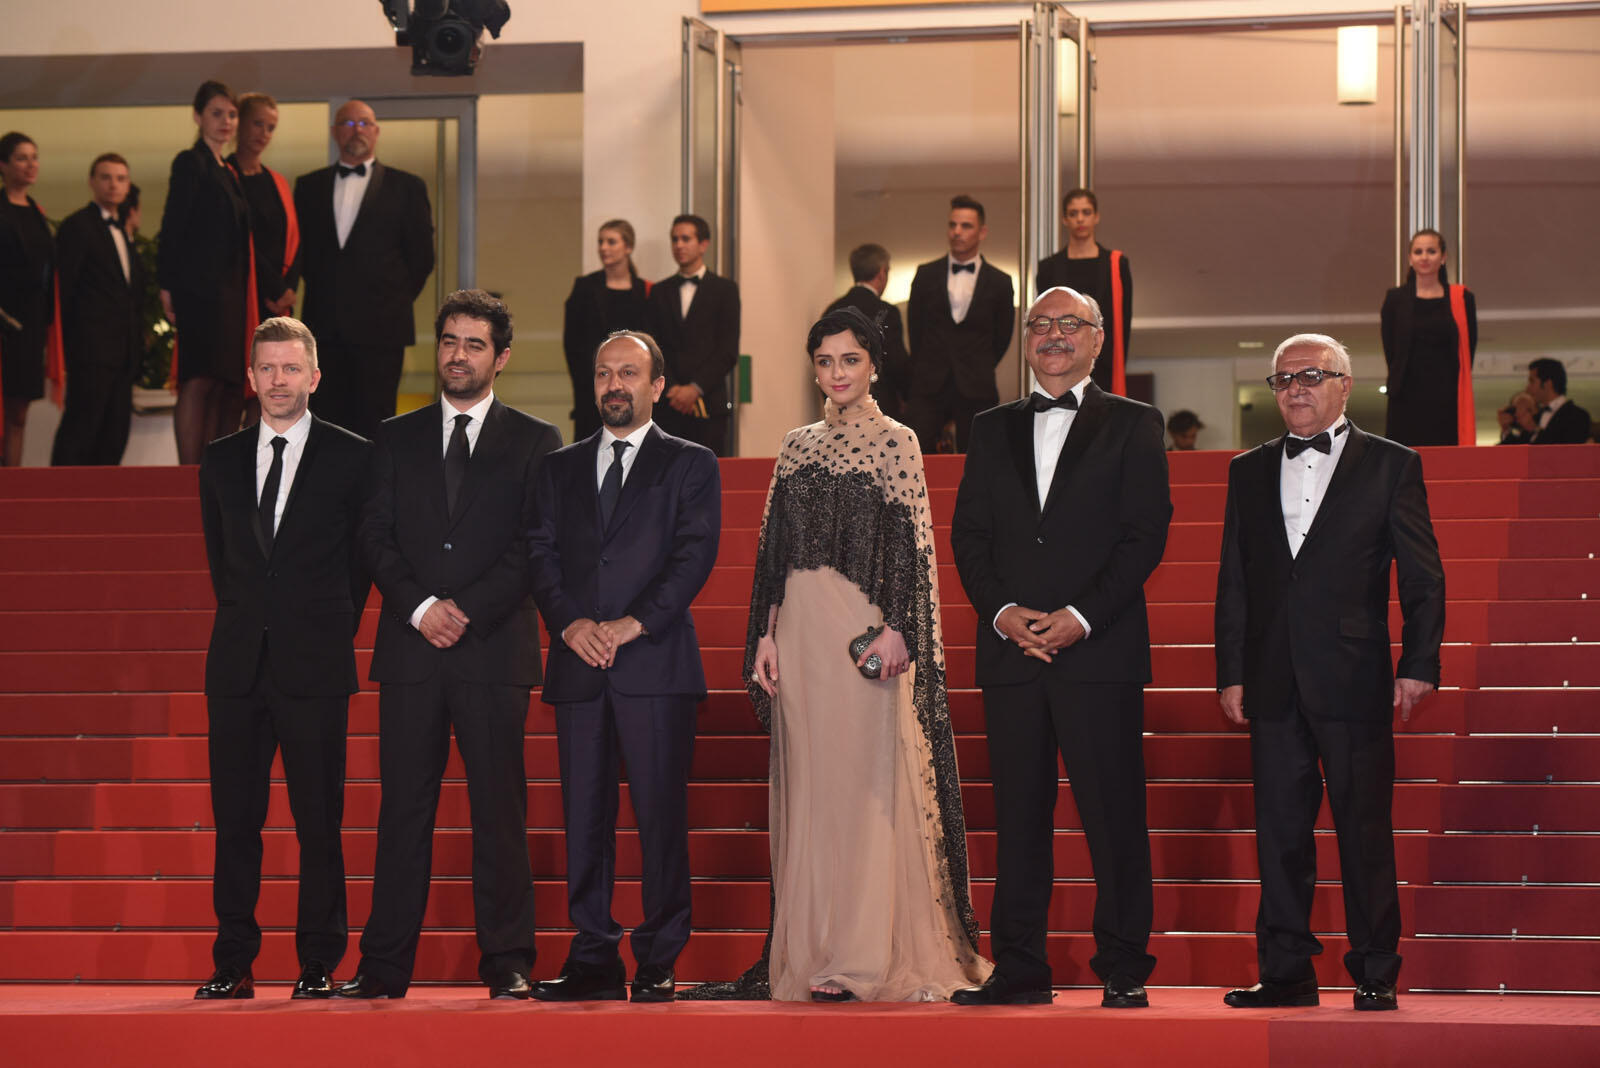 """The Salesman"" was warmly received at press screenings, prompting film critics to speculate that Asghar Farhadi could well clinch the coveted Palme d'Or."